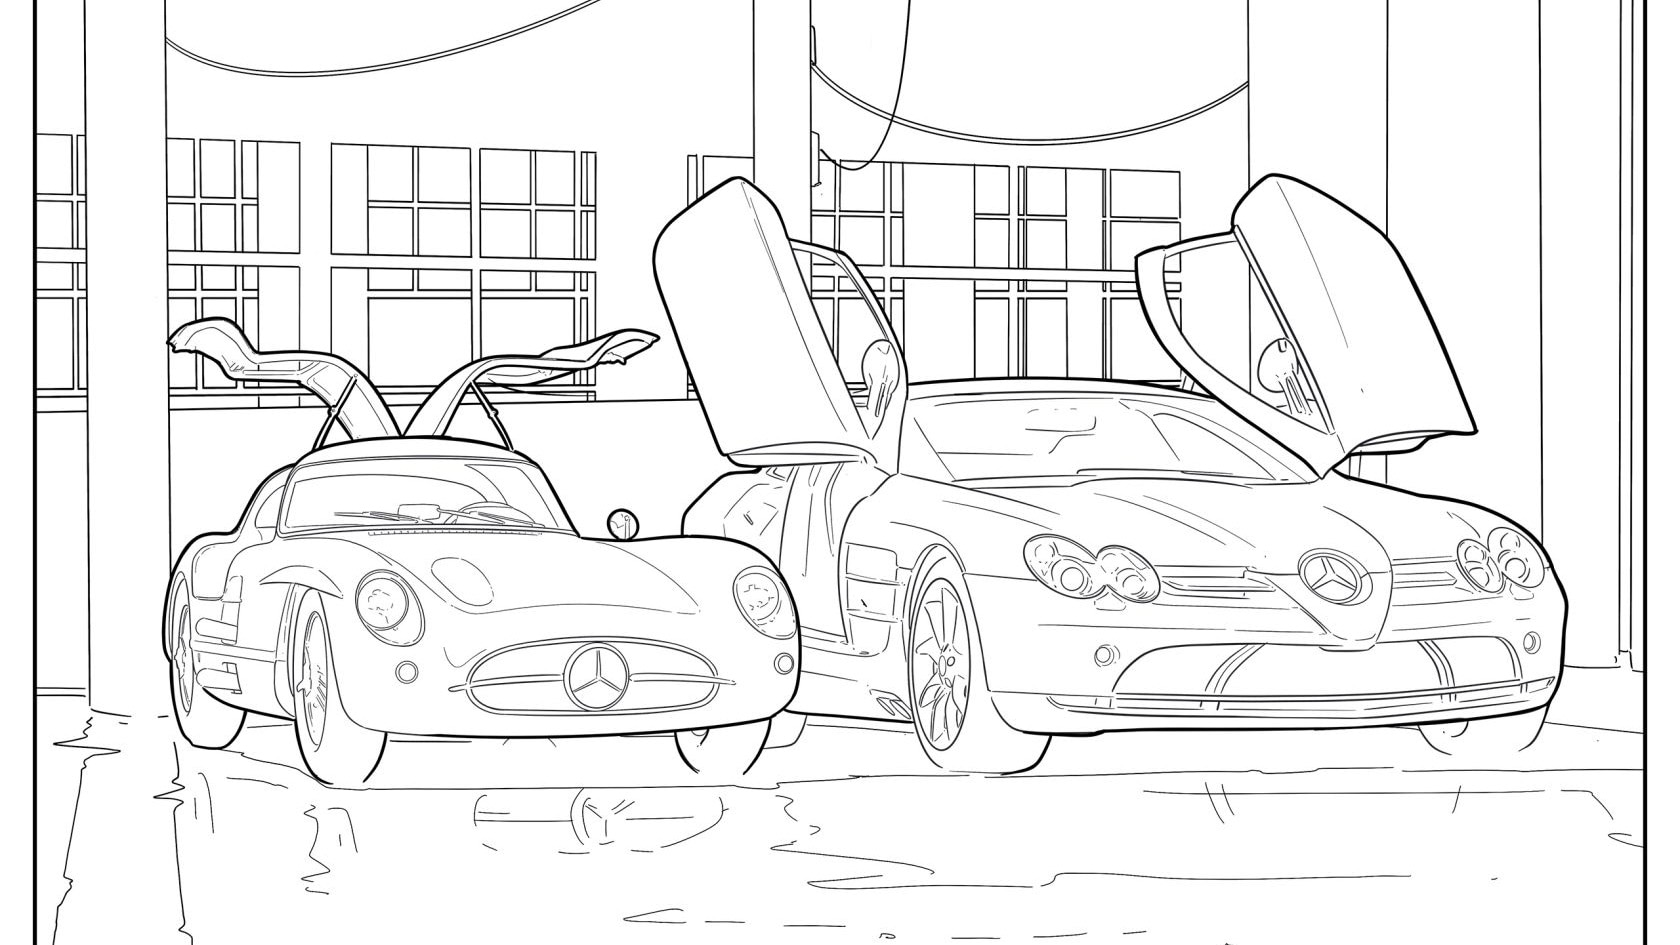 Cool Car Themed Coloring Books For Staying Busy When